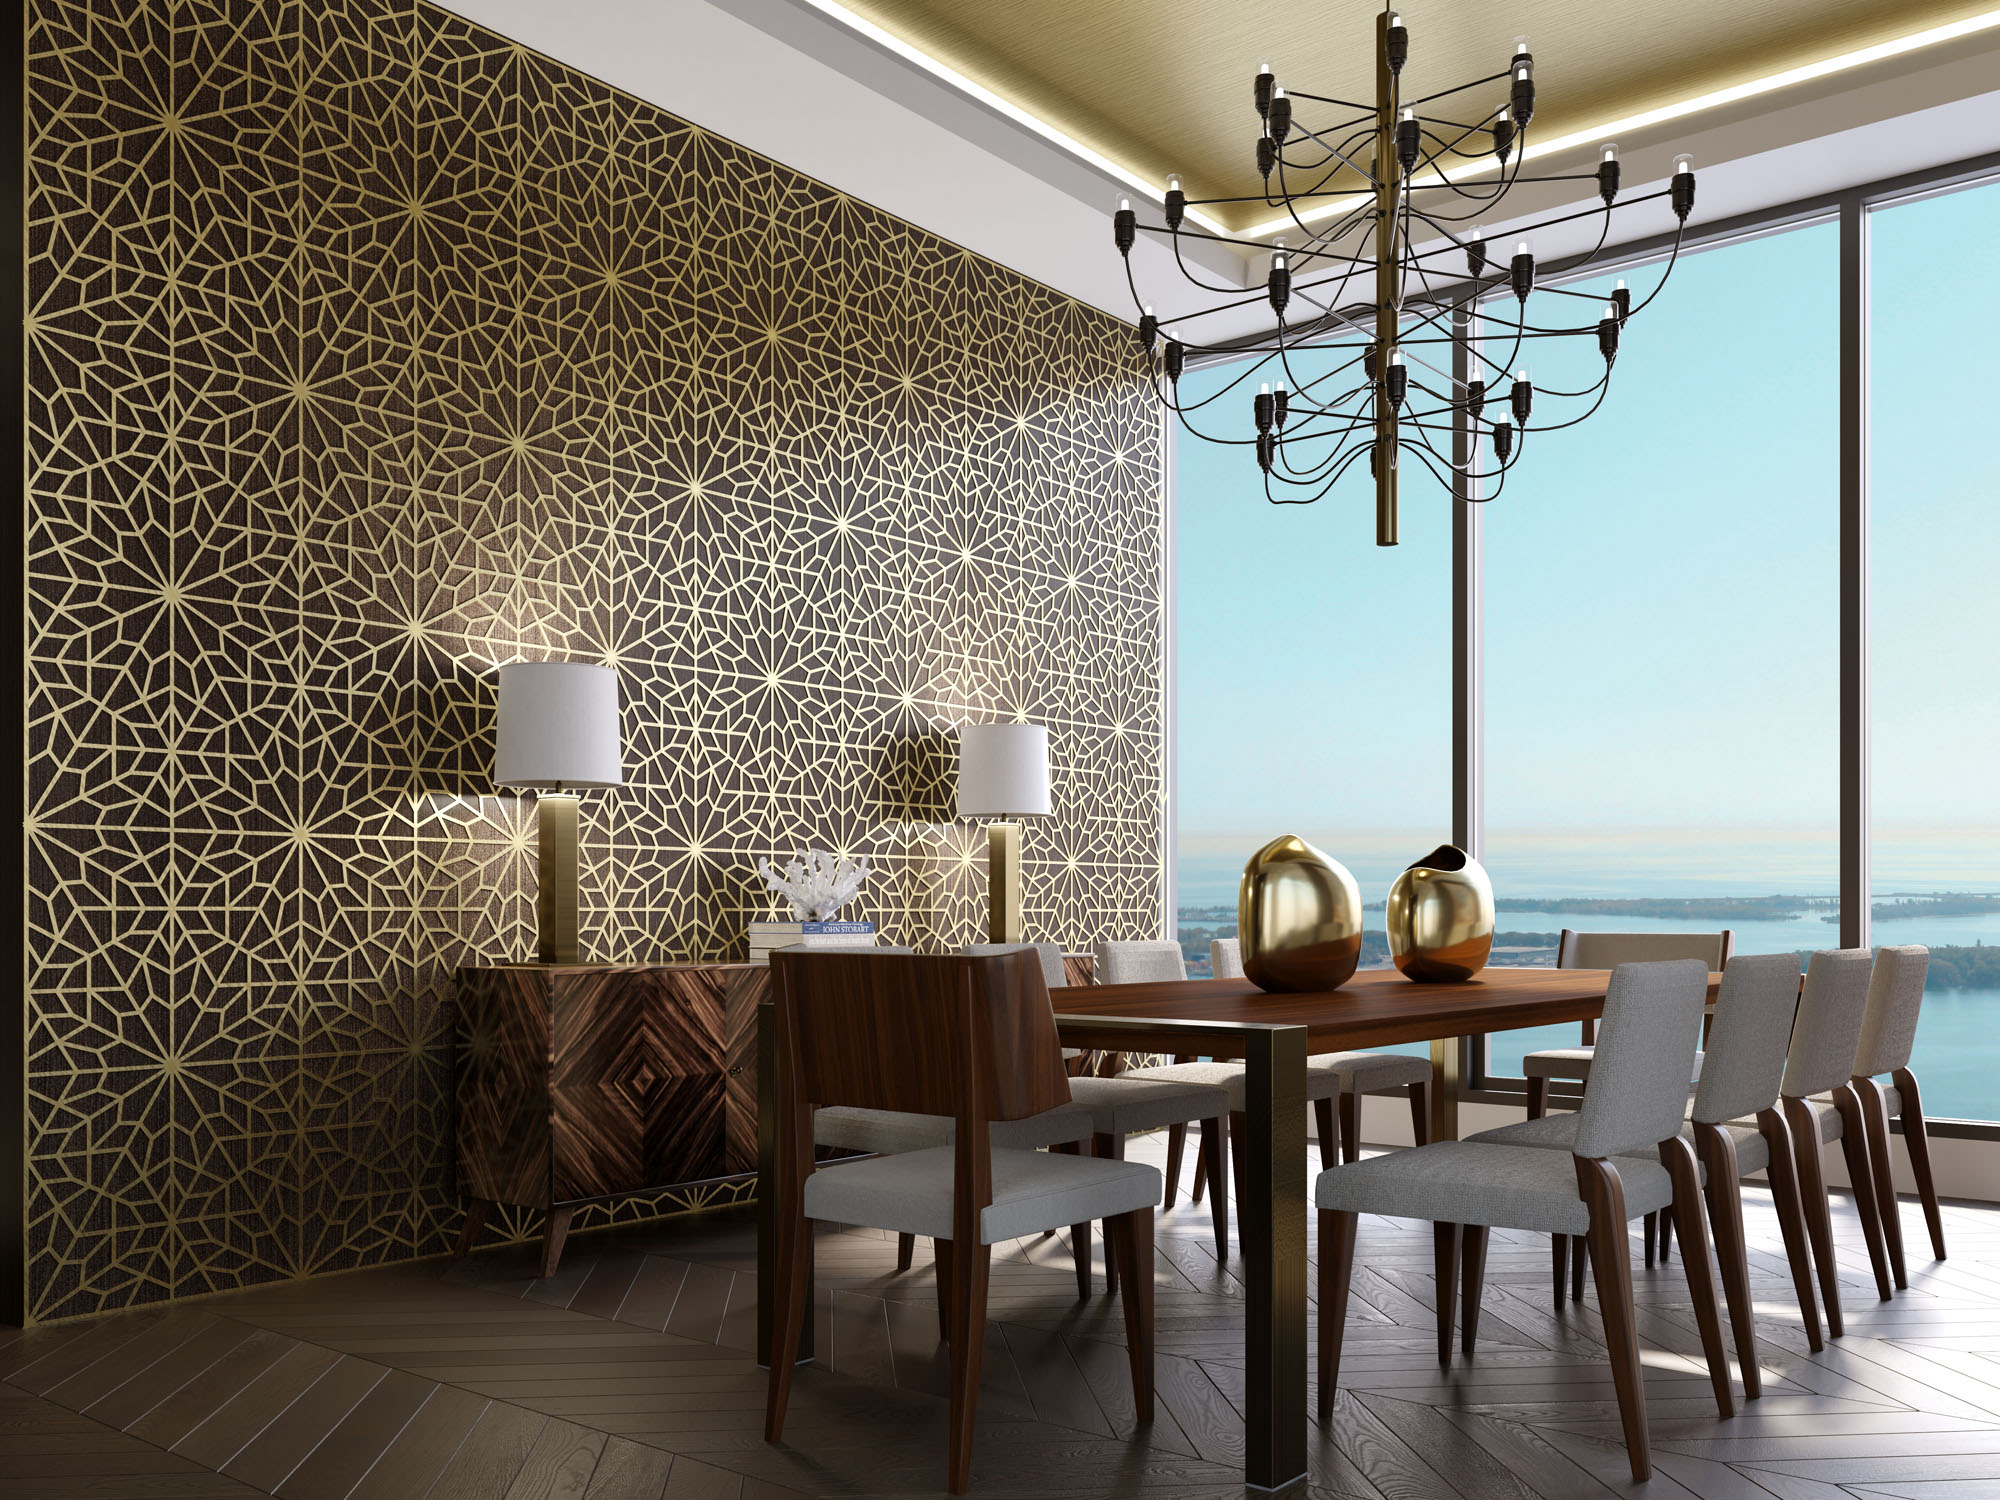 3D interior Rendering of Dining Room Penthouse for Tridel | Aareas Interactive